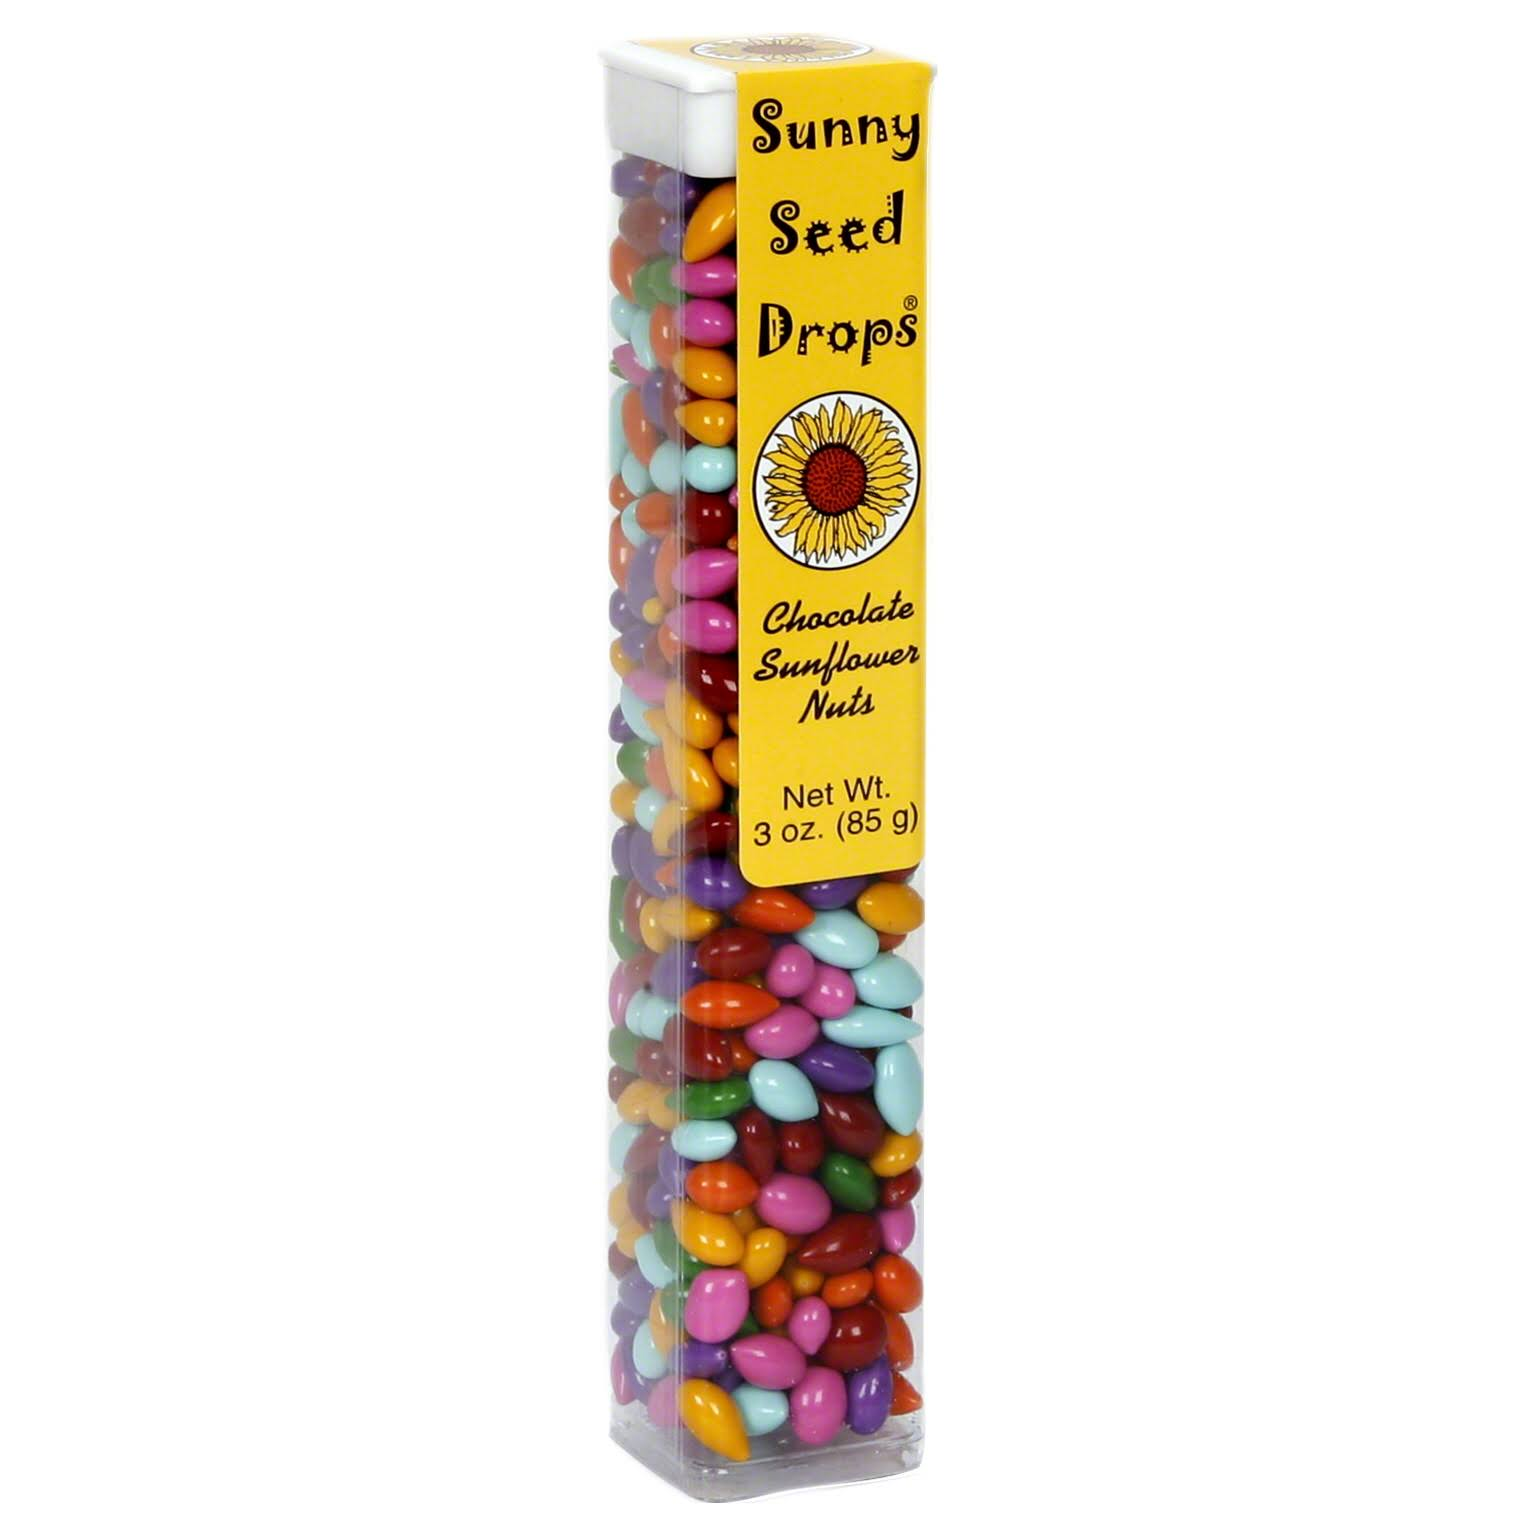 Sunny Seed Drops Chocolate Sunflower Nuts - 3 oz